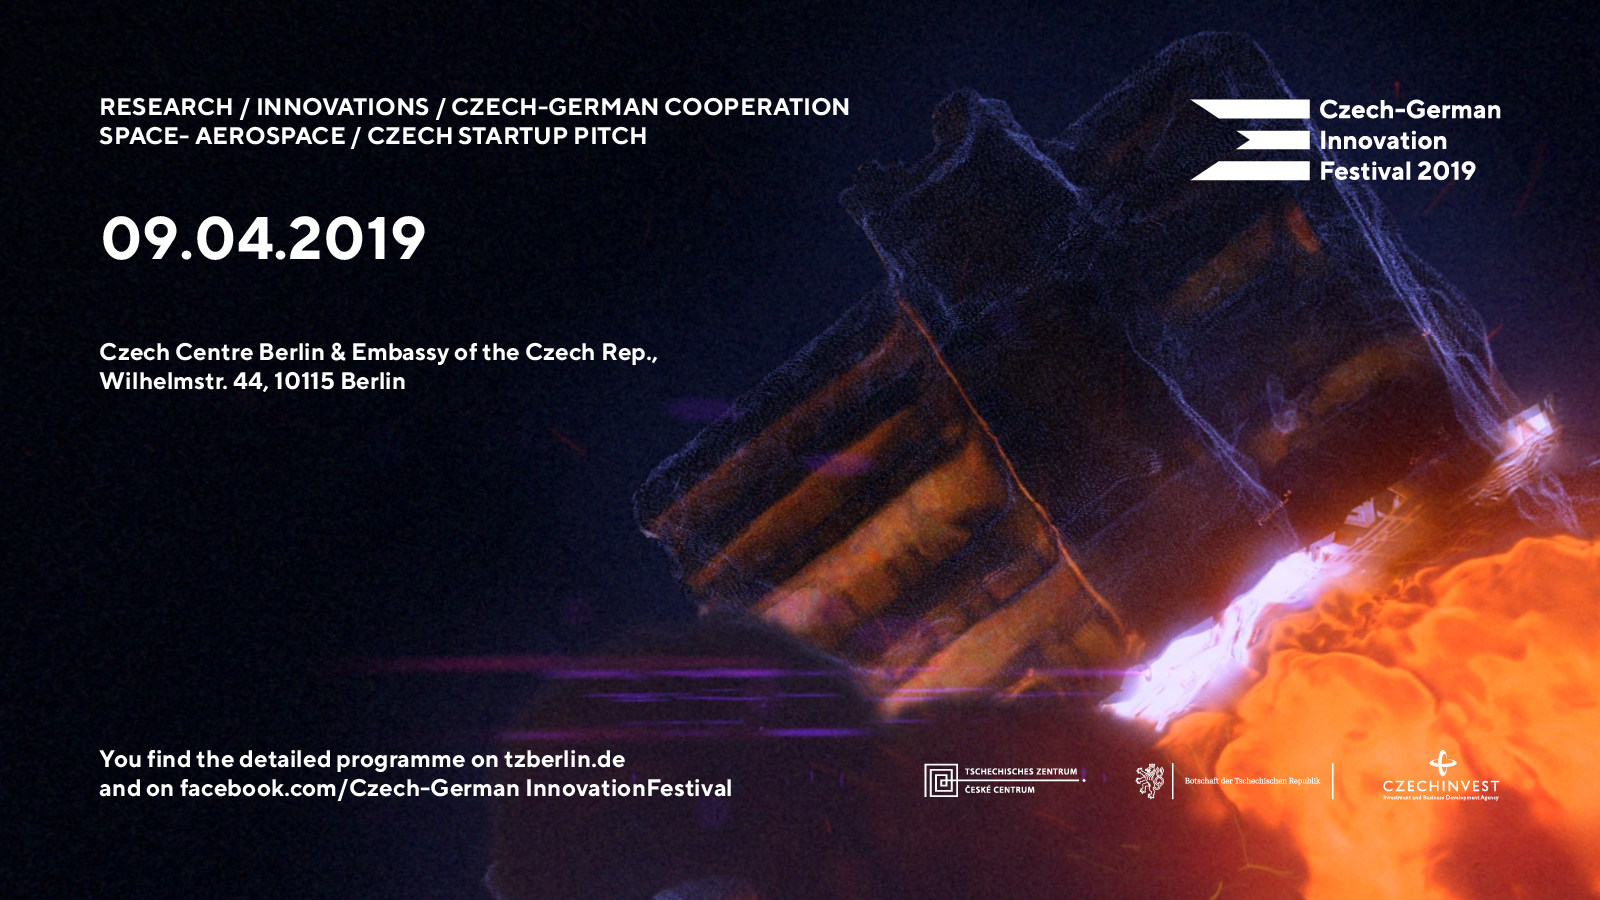 Czech Innovation Festival 2019 attachment